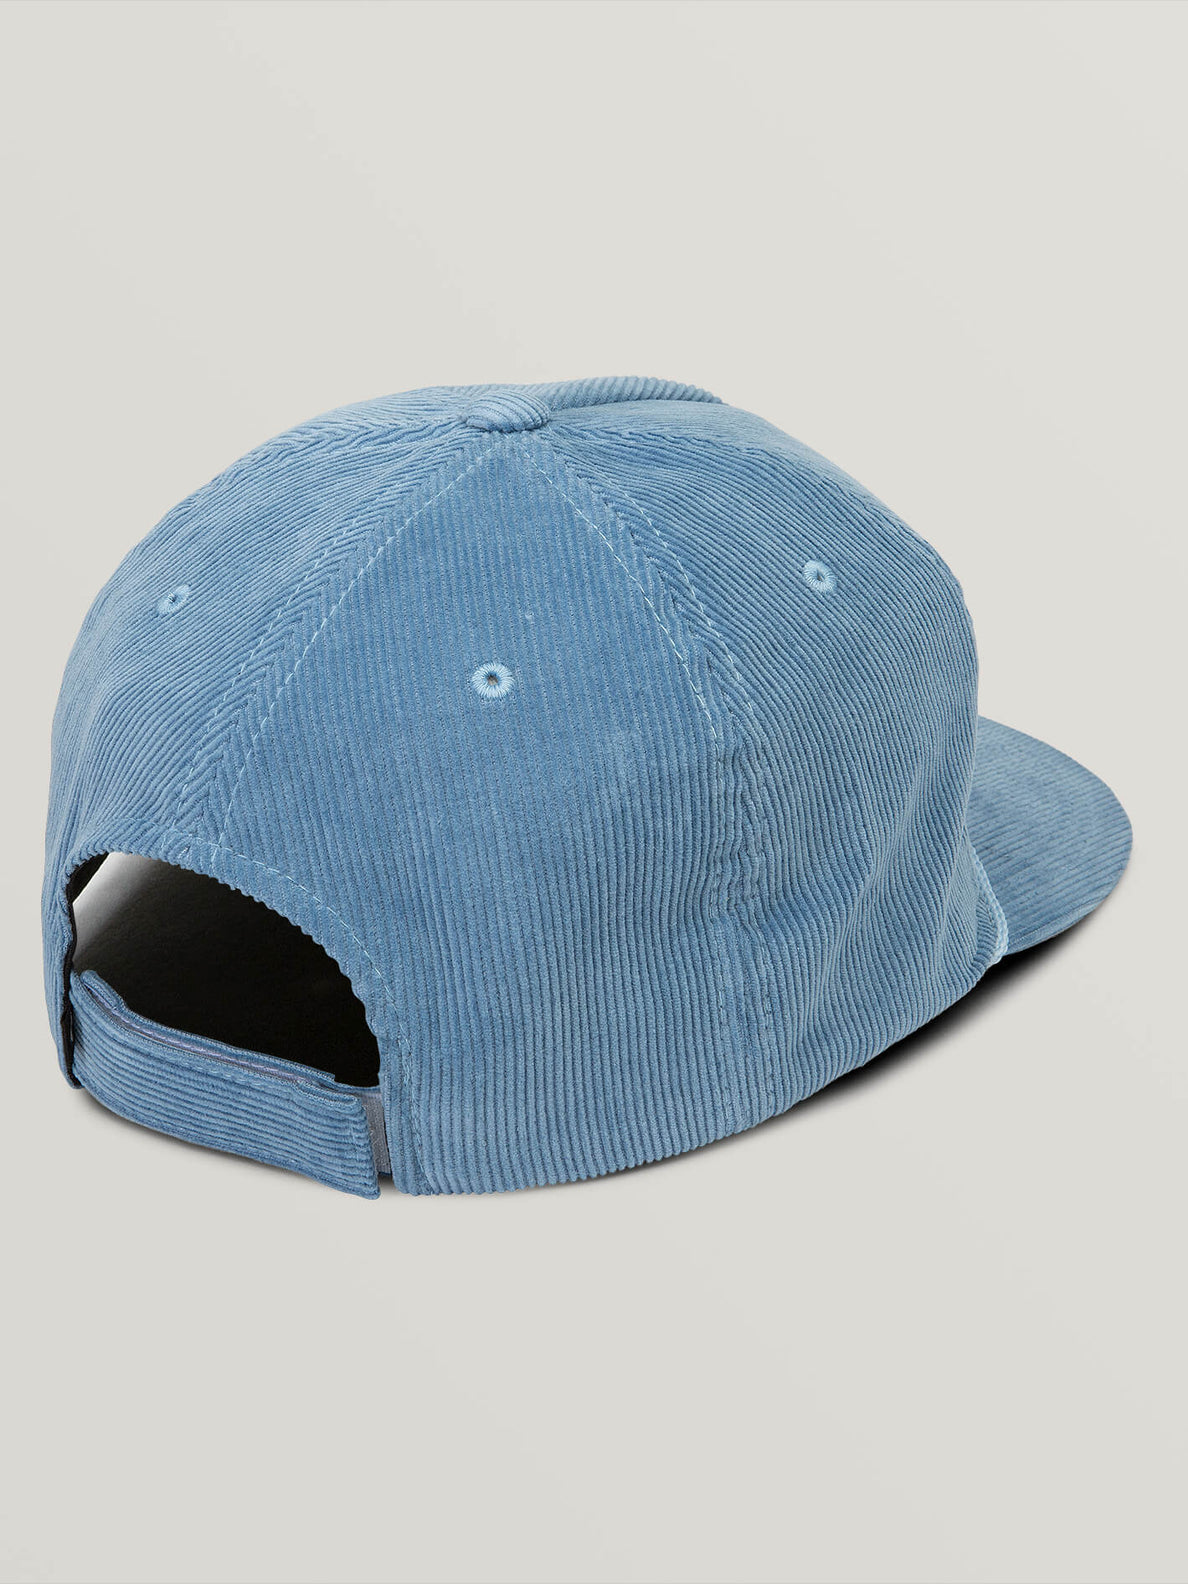 Peace Wing Hat In Vintage Blue, Back View